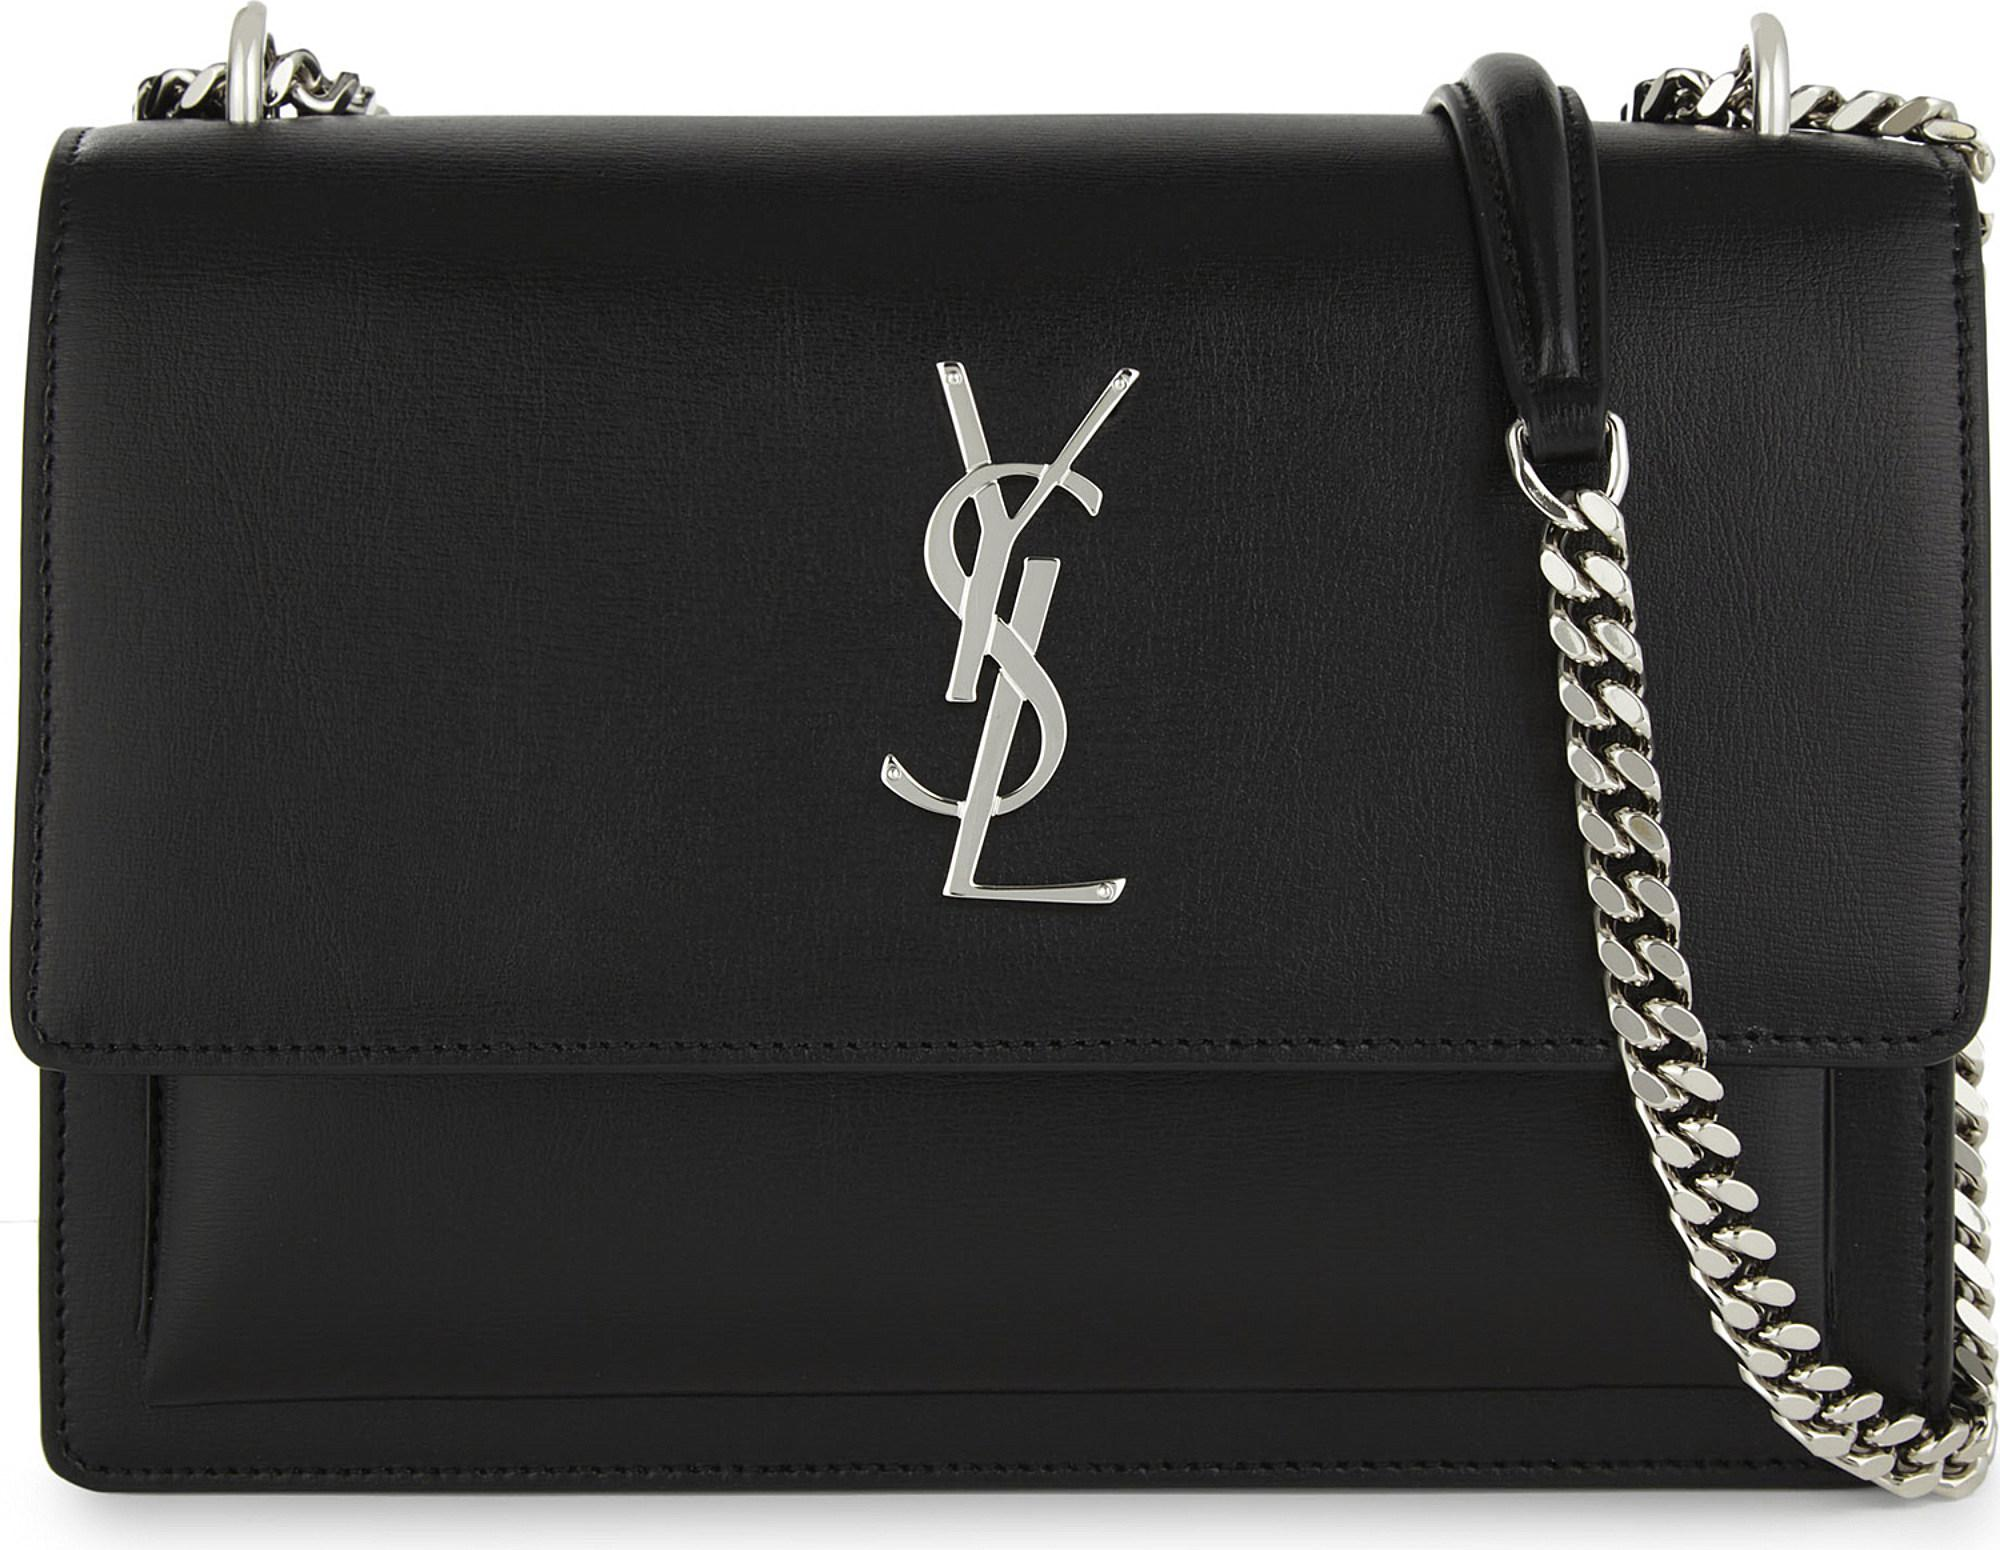 Saint Laurent. Womens Monogram Sunset Elegant Black Leather Medium Cross  Body Bag 60c088bda4d5e